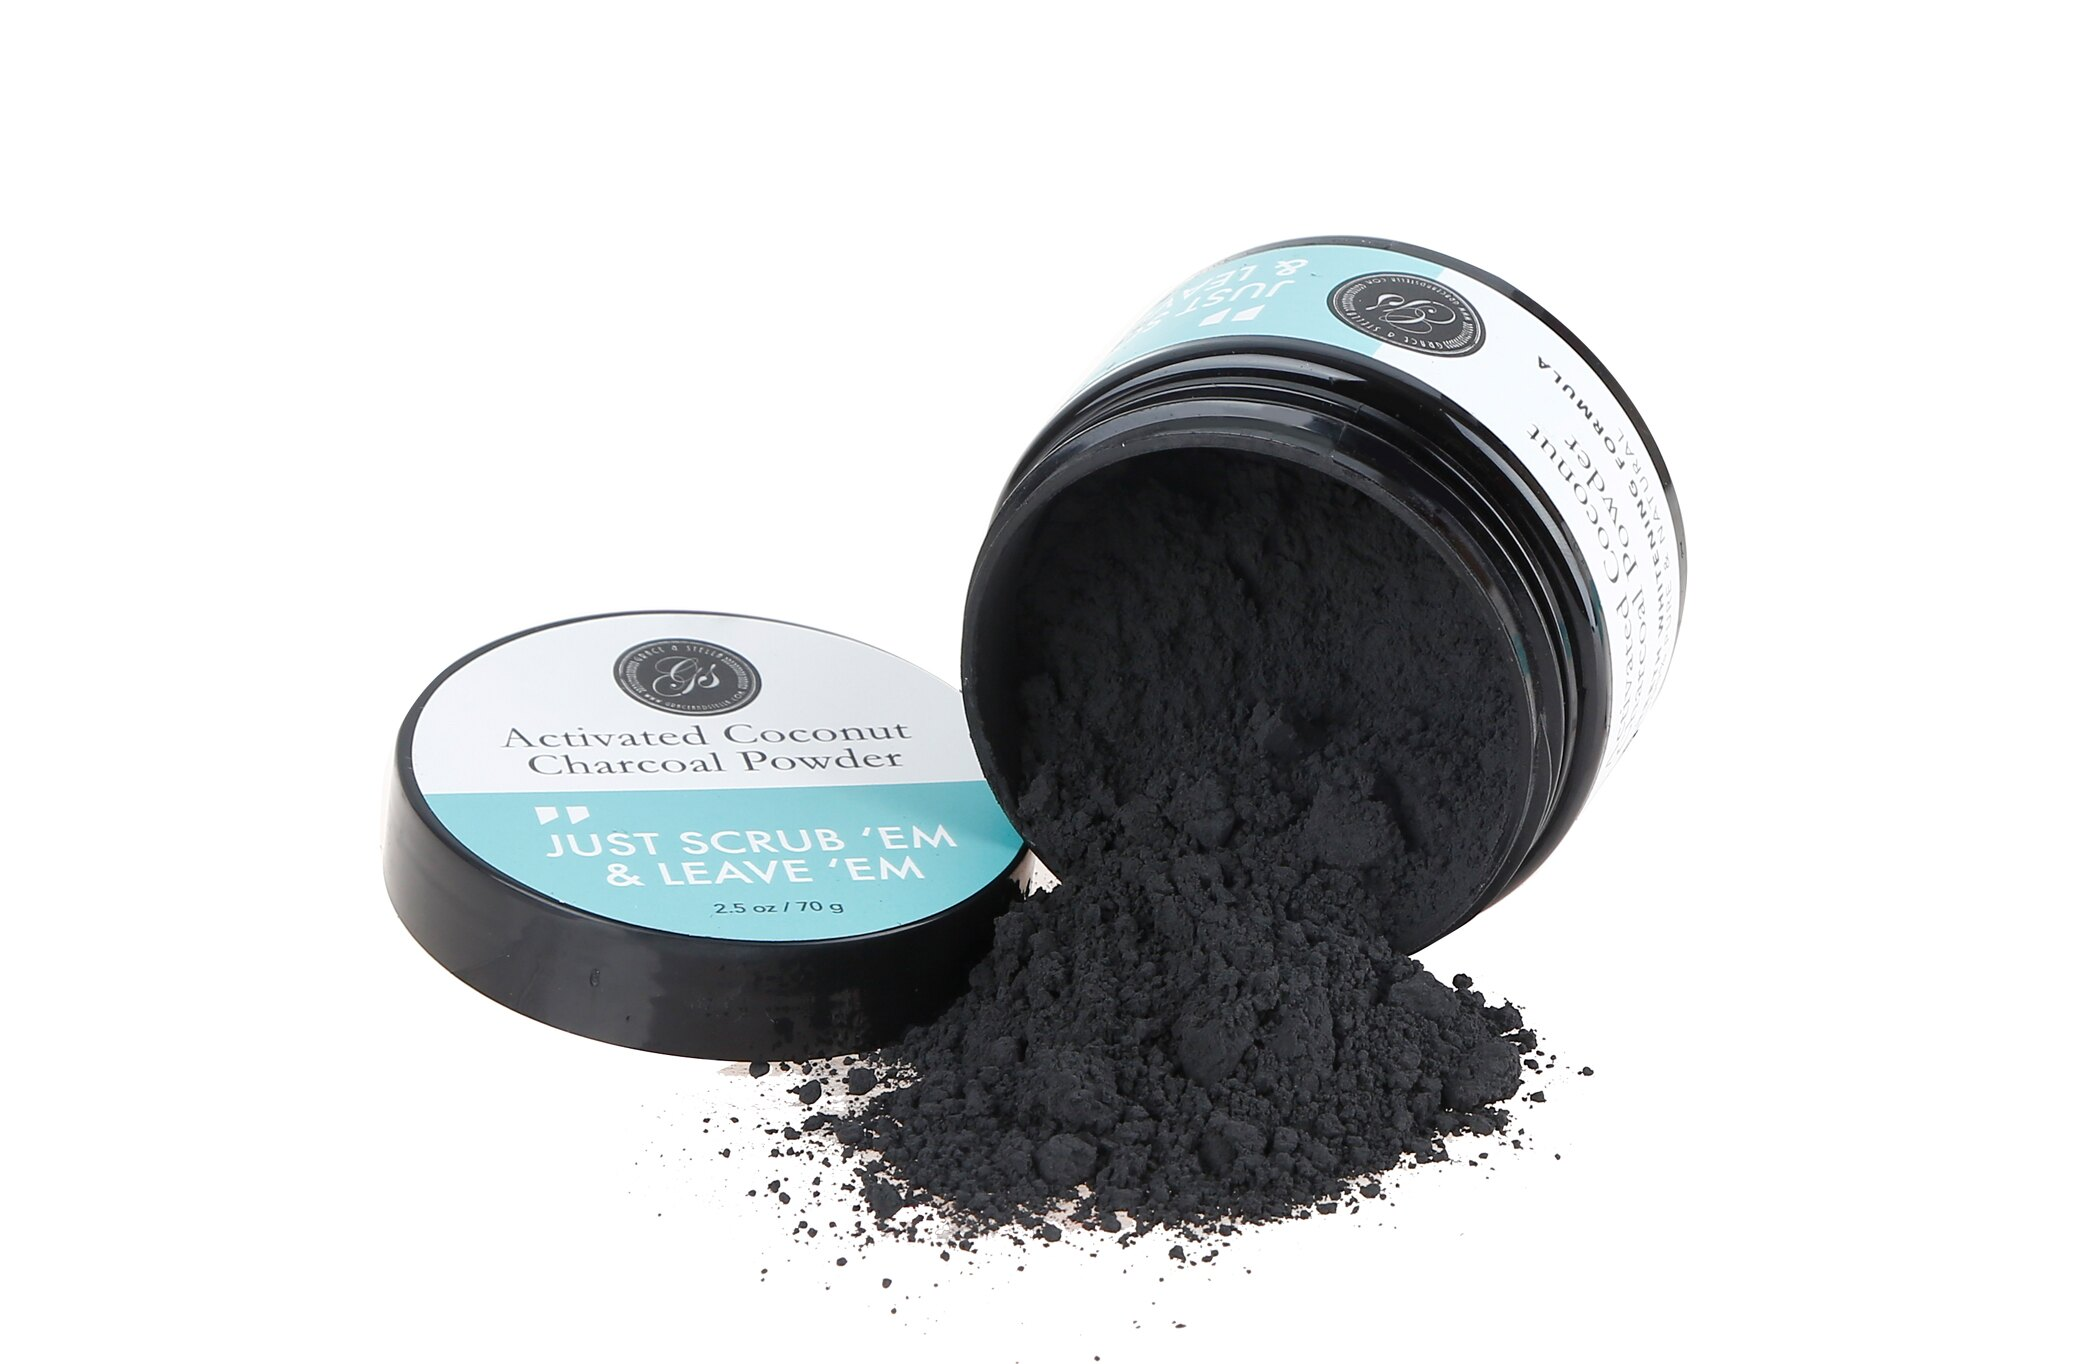 Activated Coconut Charcoal Teeth Whitening Powder by Grace & Stella Co. 6